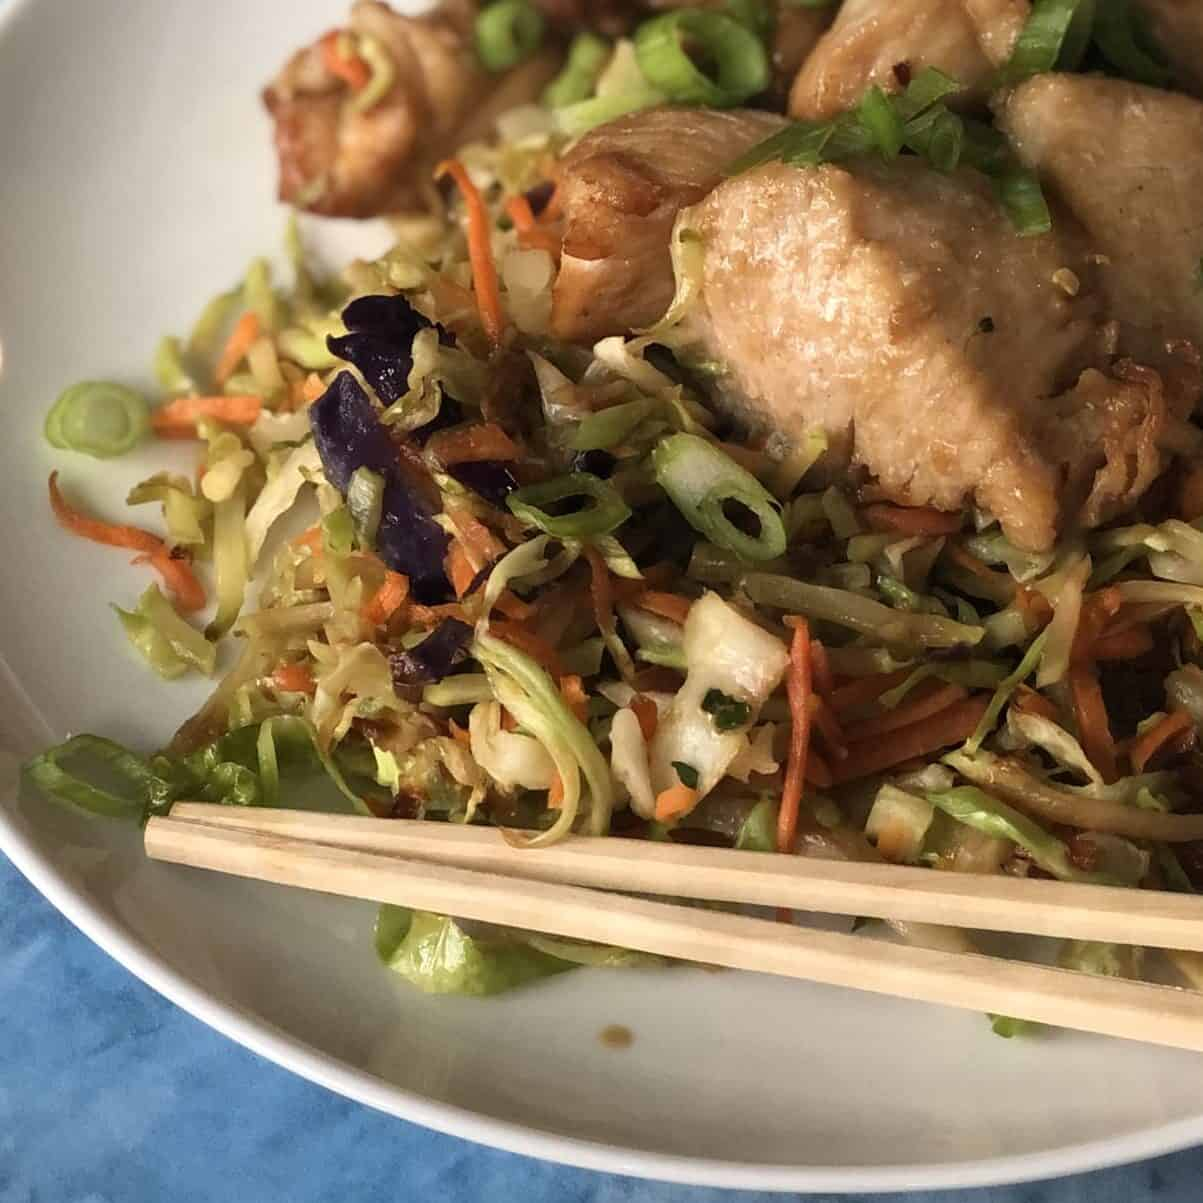 plate of stir fried veggies and chicken with chopsticks